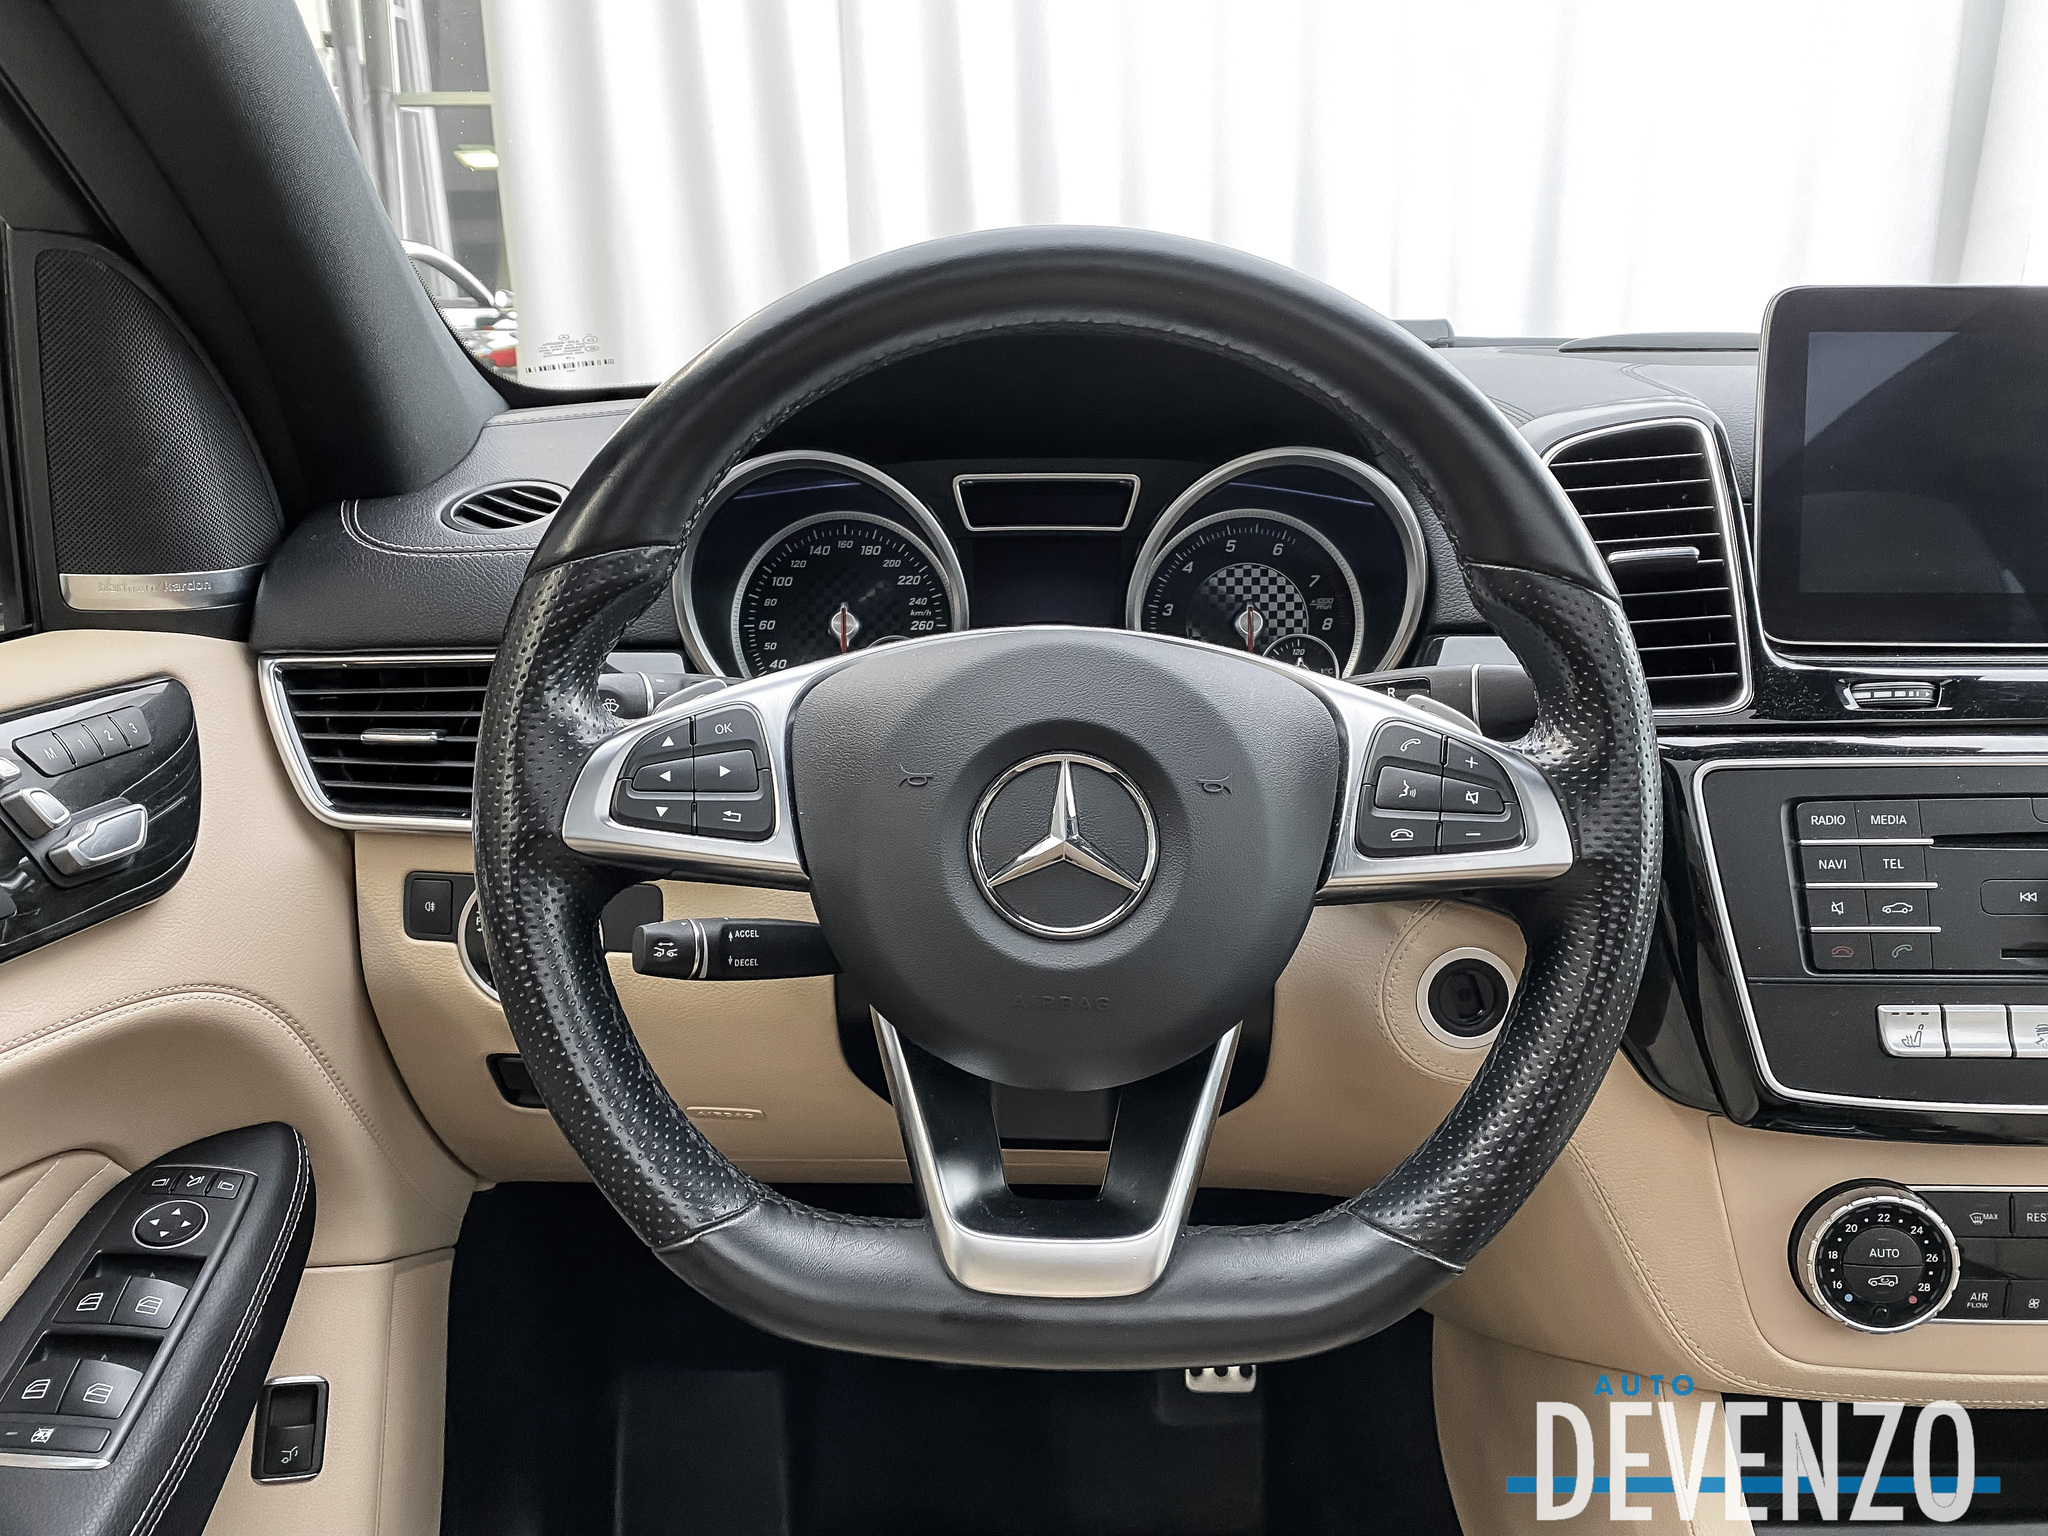 2016 Mercedes-Benz GLE-Class 4MATIC GLE450 AMG COUPE complet